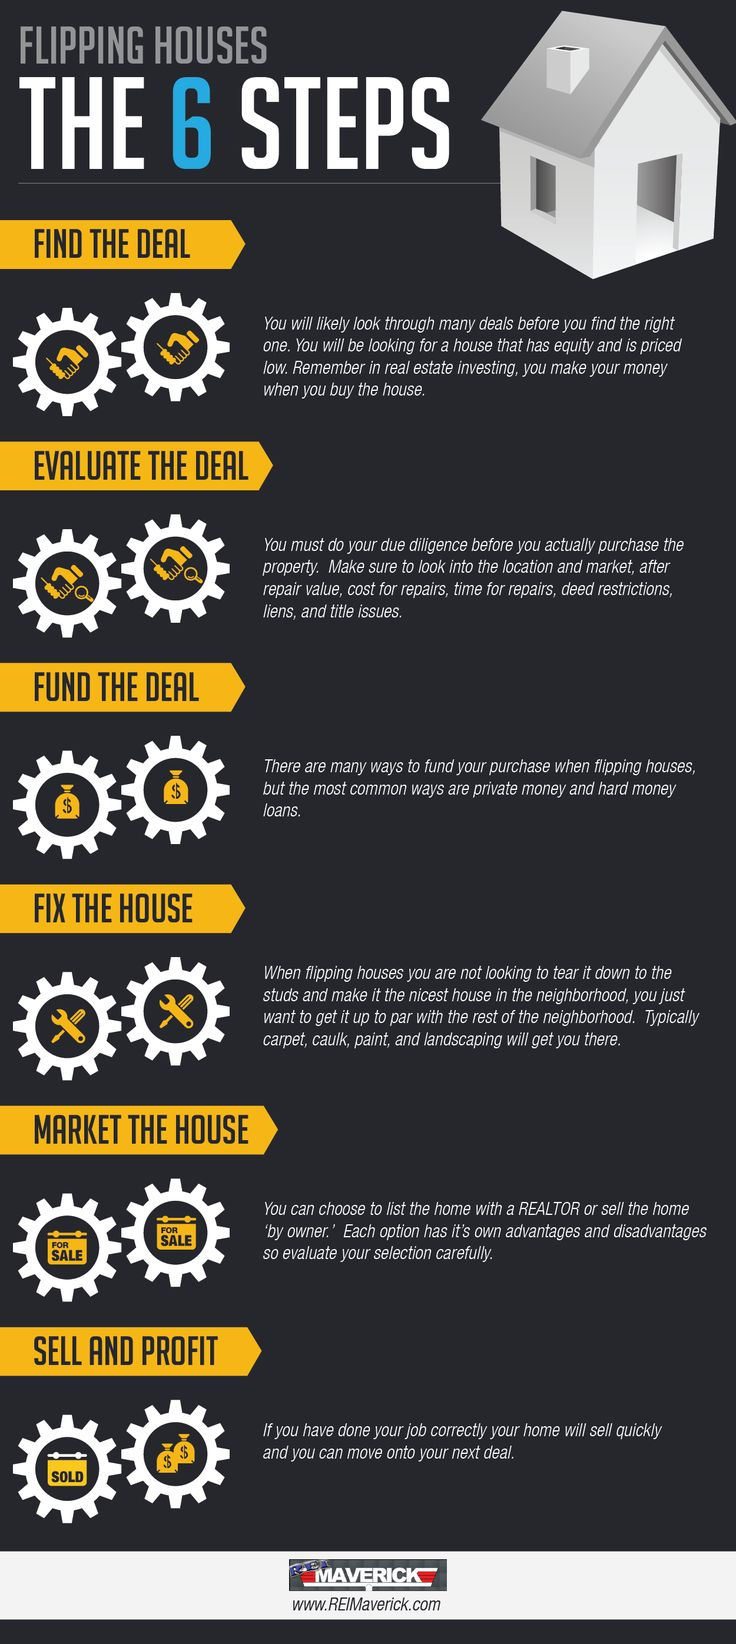 Flipping Houses: The 6 Steps - Infographic design